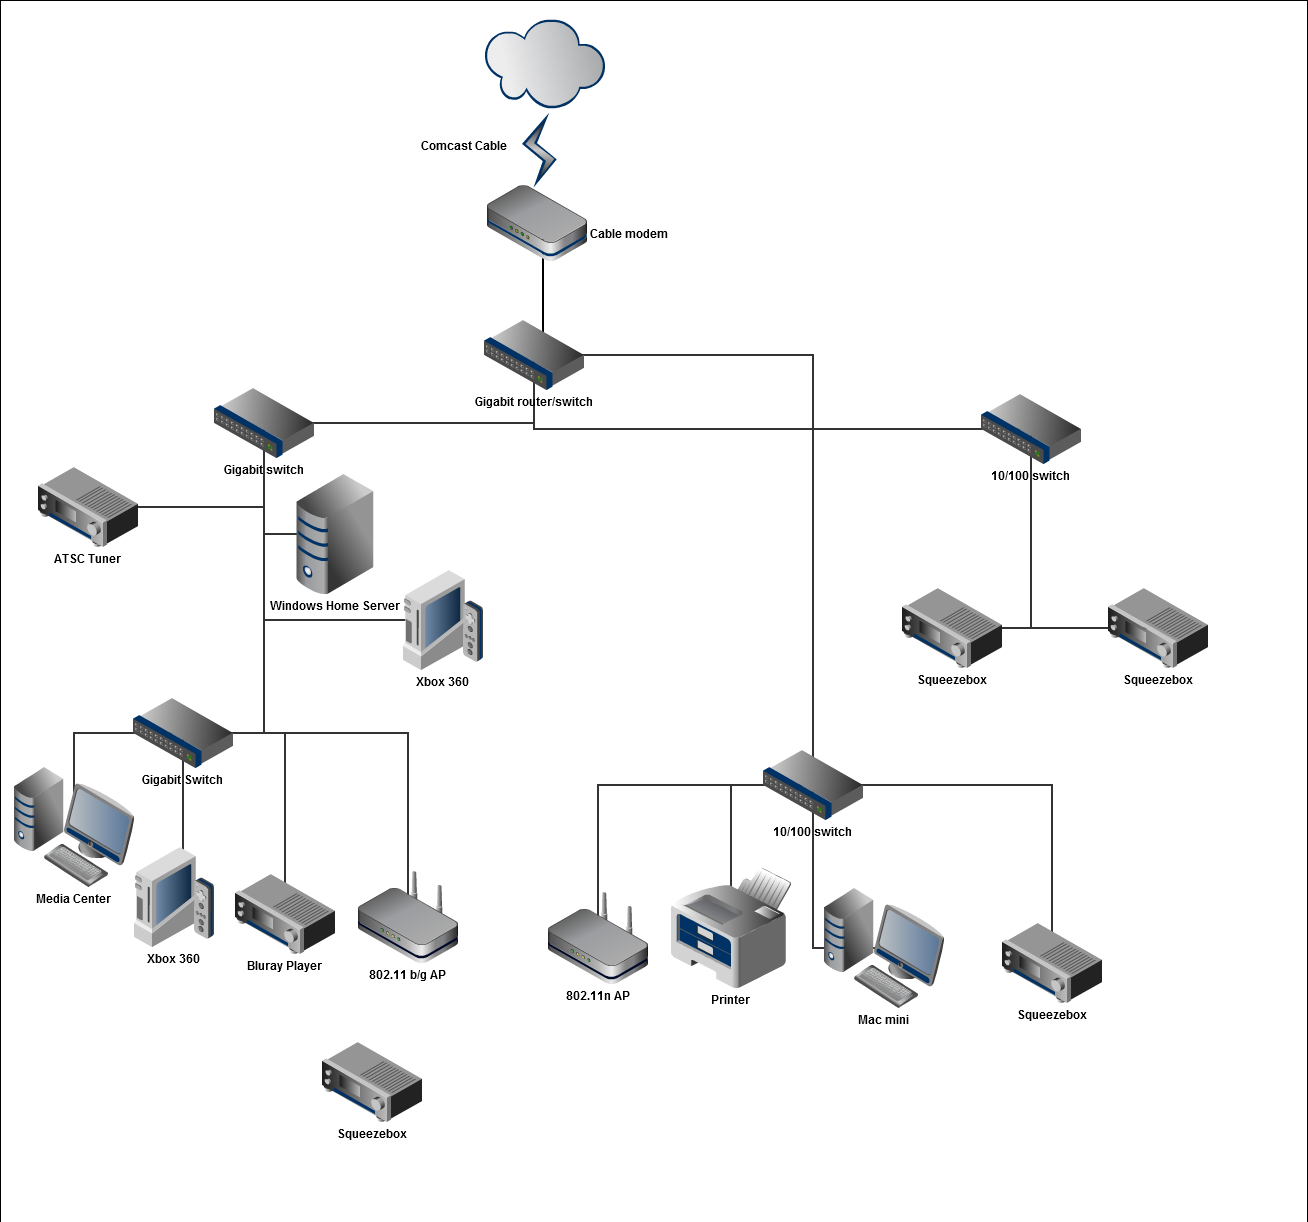 Network reorganization